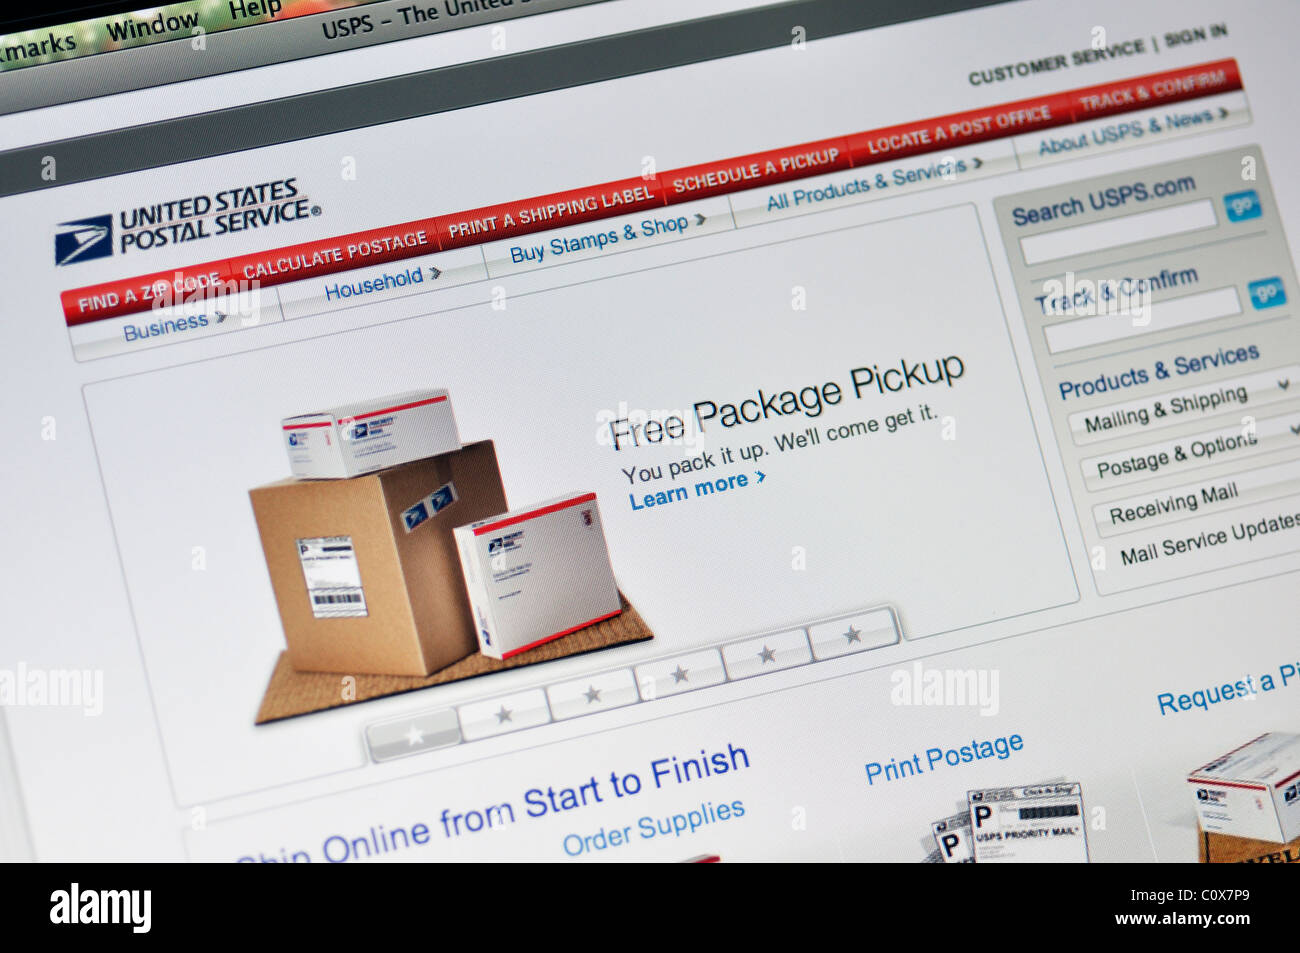 USPS website - US postal service - Stock Image